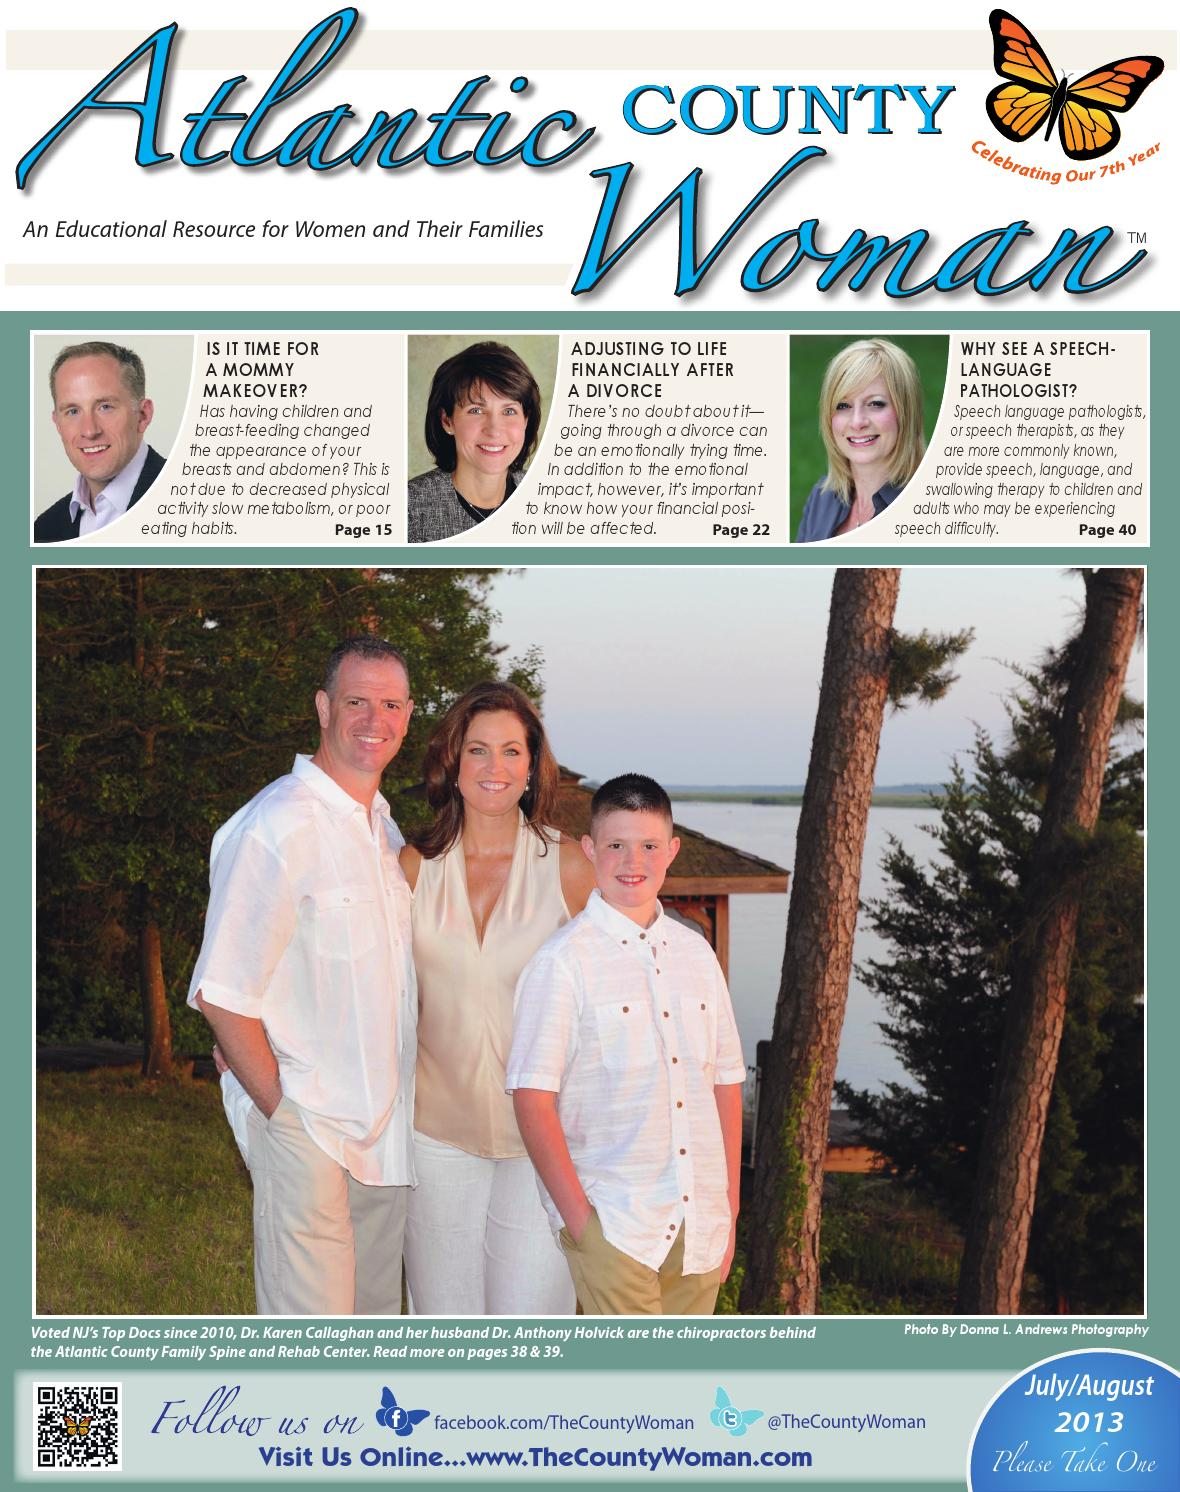 Atlantic County Woman - 2013 July/August by The County Woman